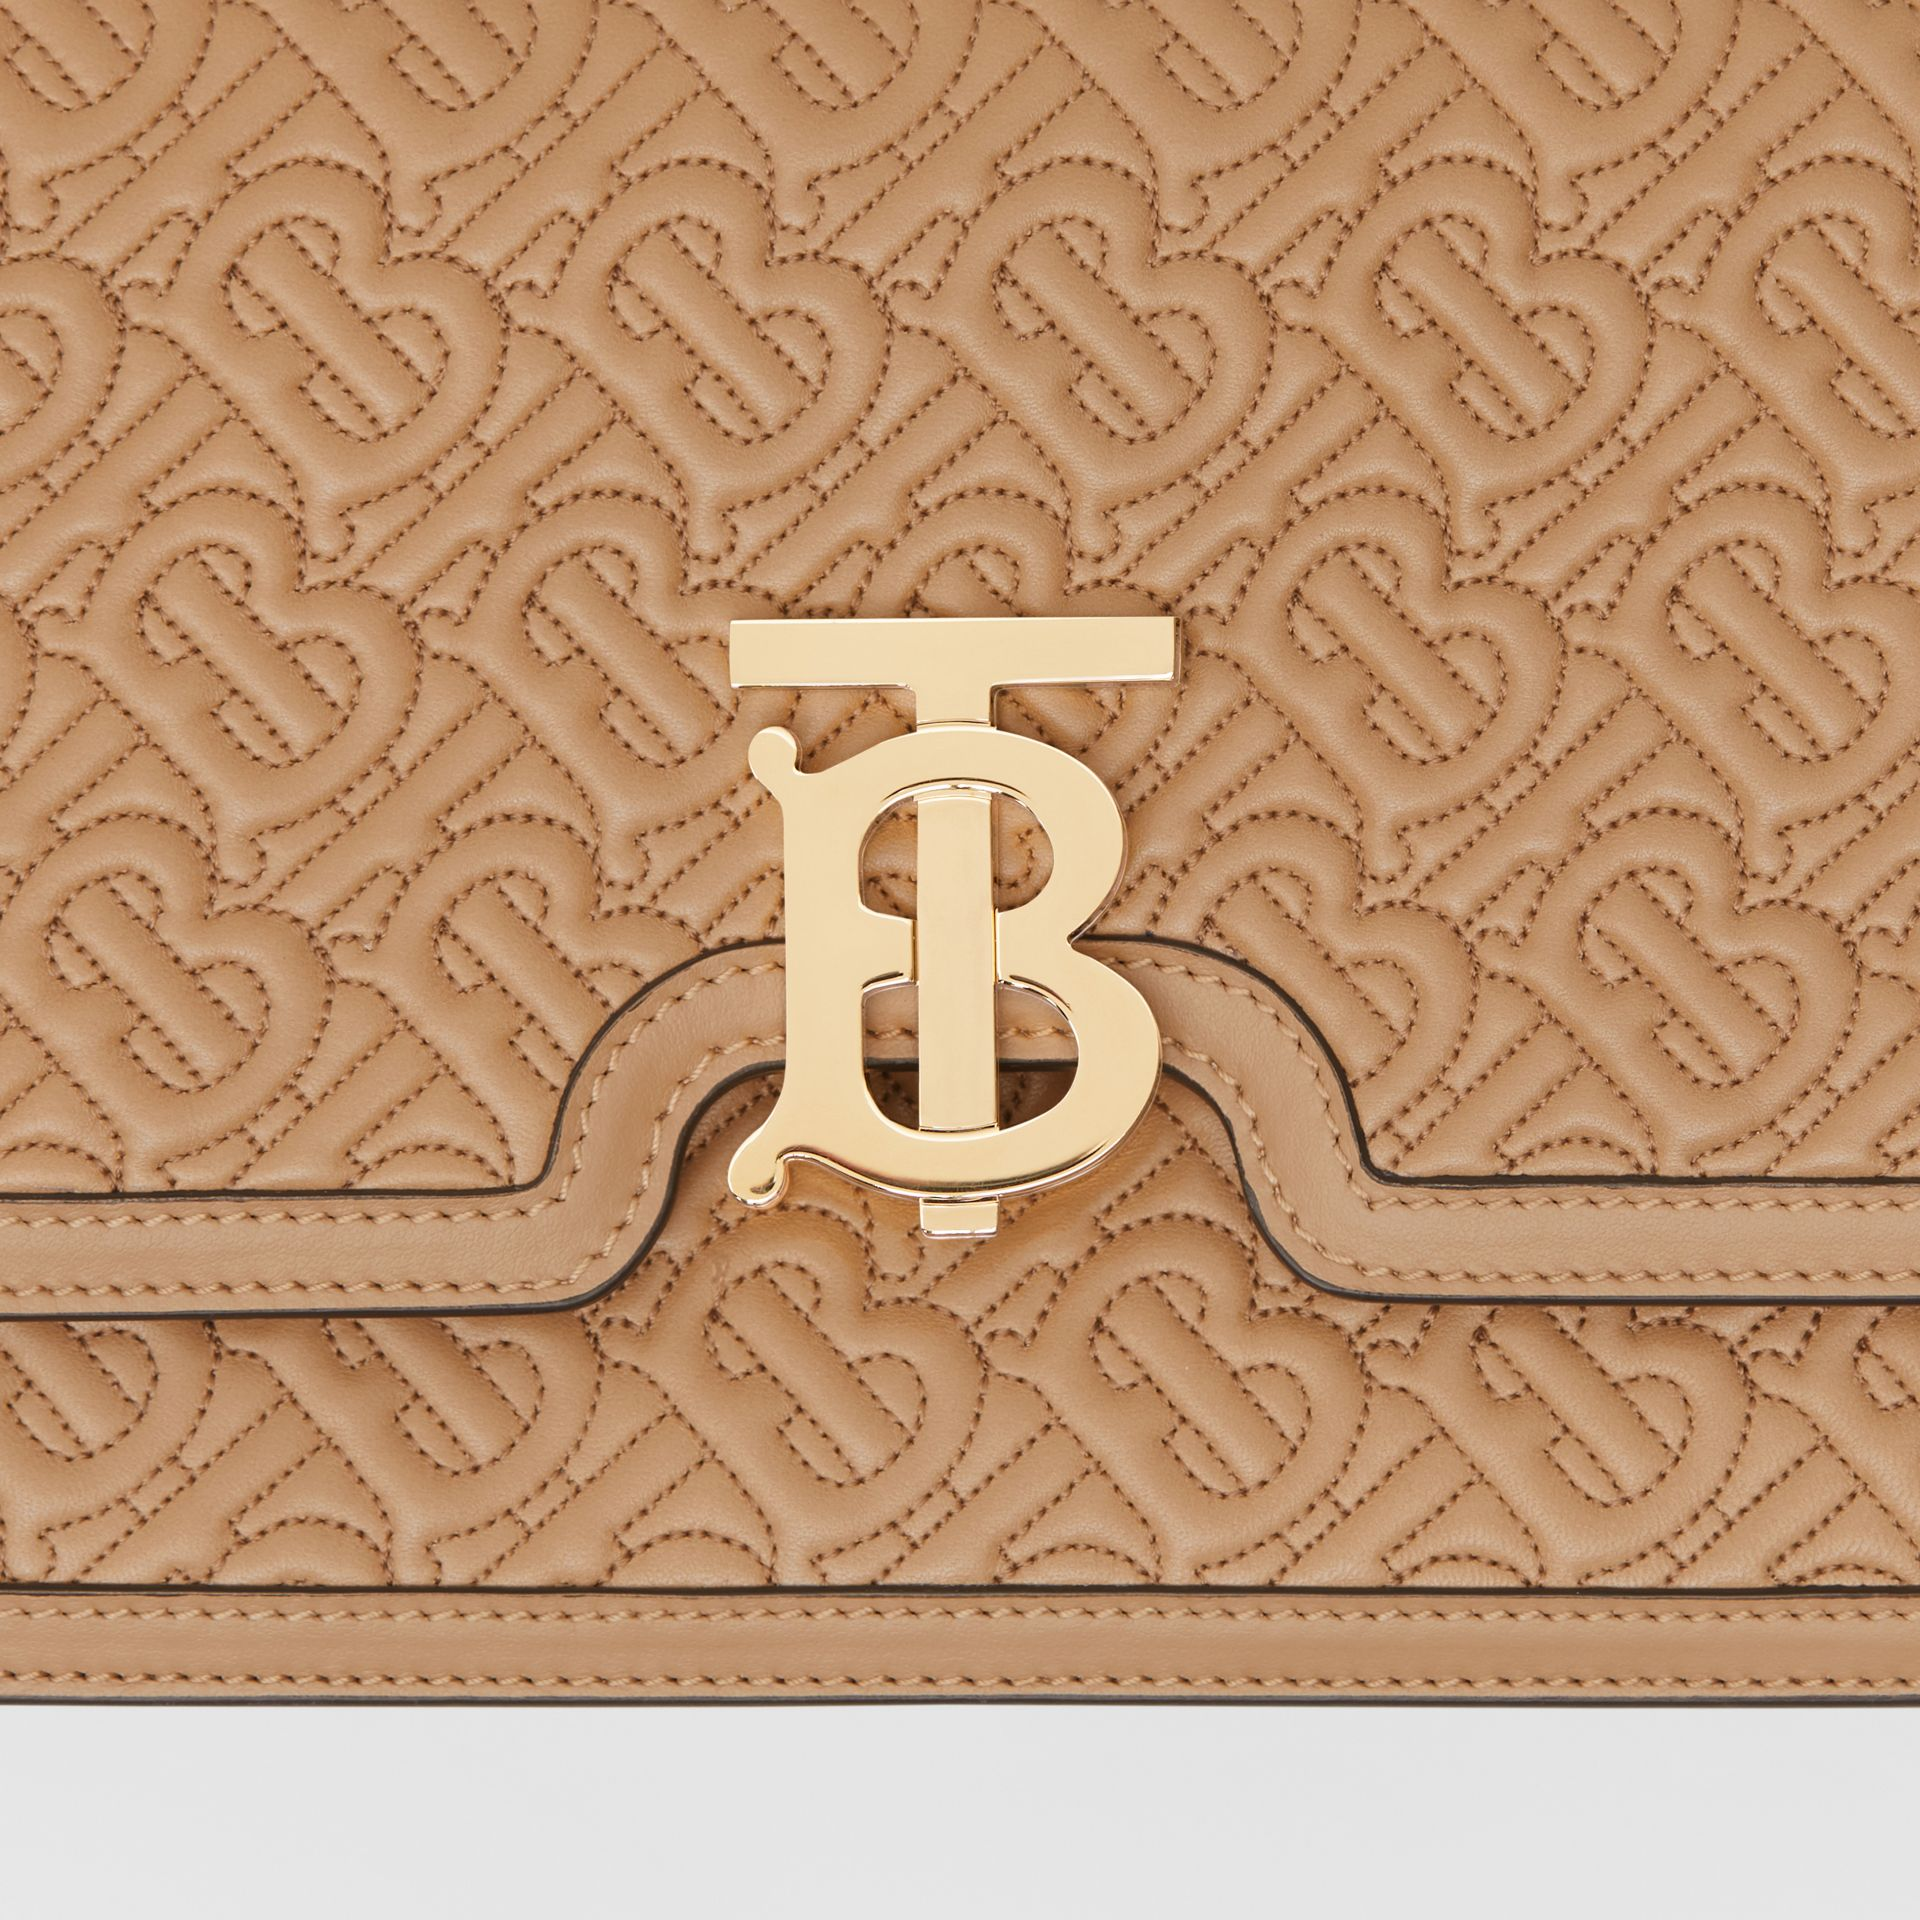 Medium Quilted Monogram Lambskin TB Bag in Honey - Women | Burberry Singapore - gallery image 1